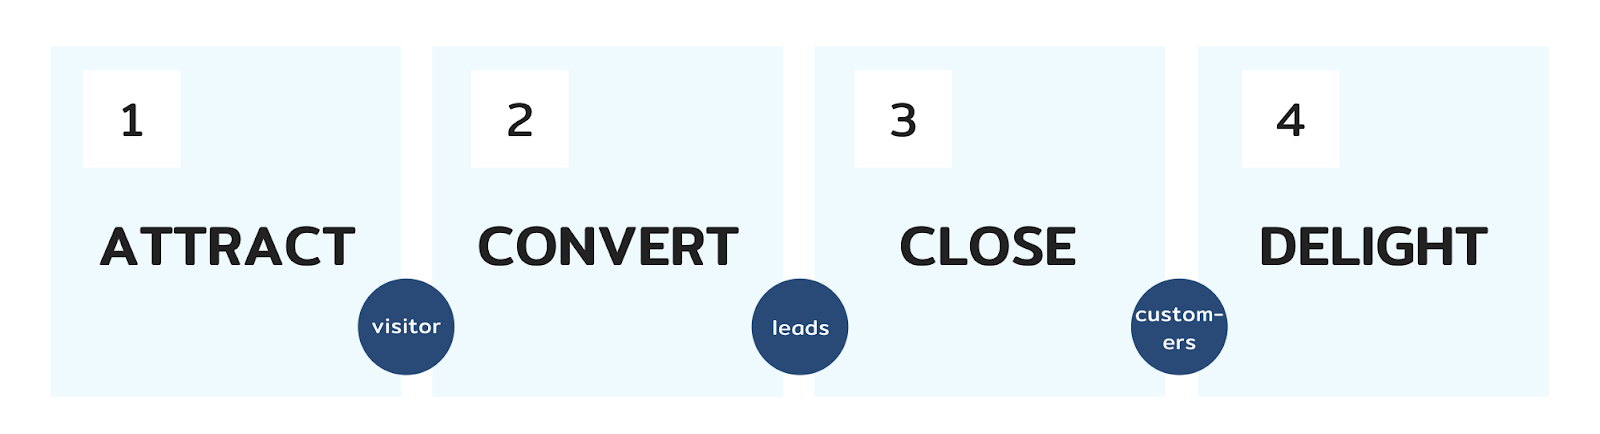 inbound-marketing-framework-2